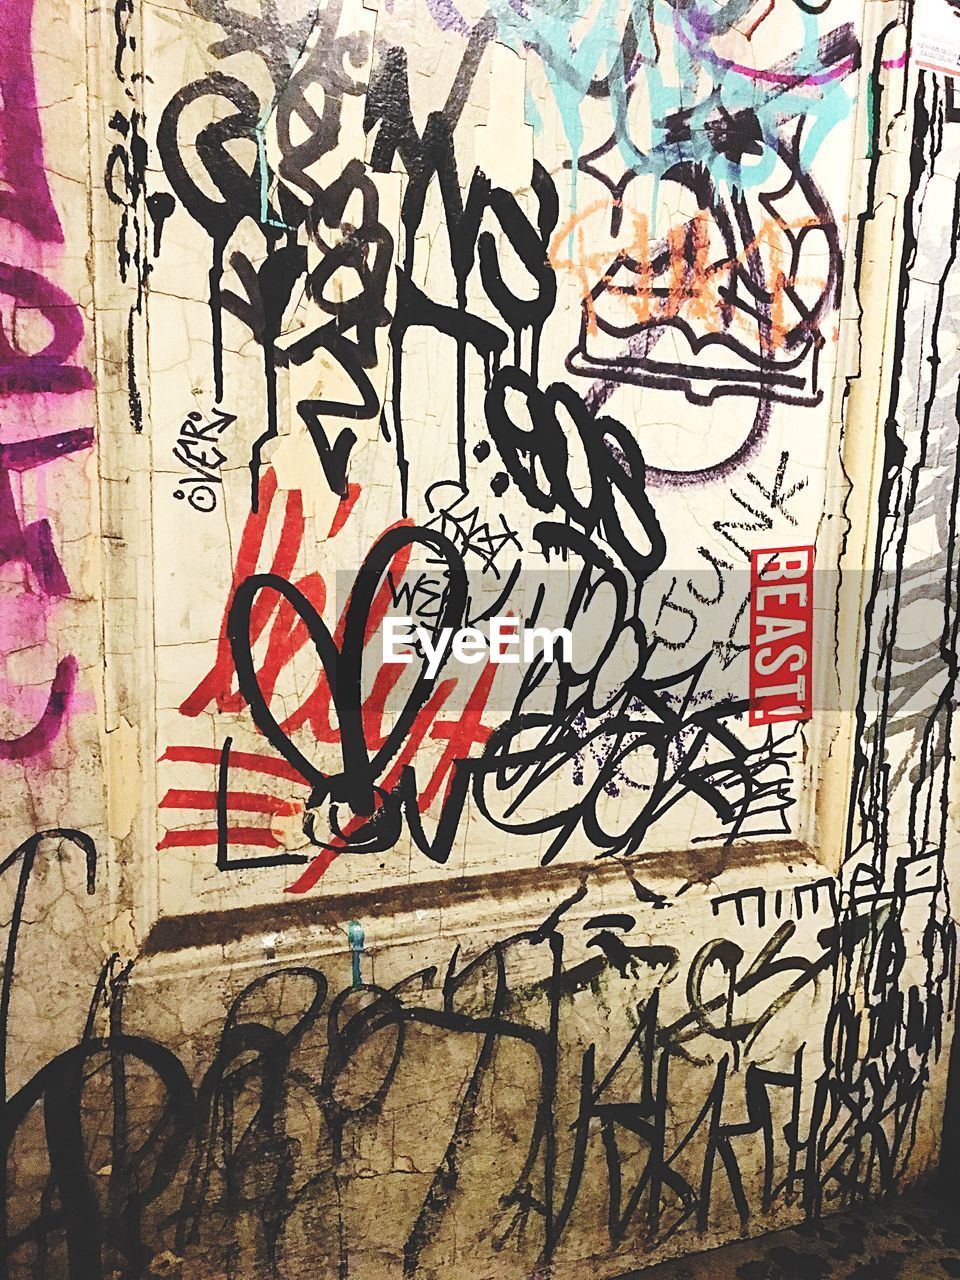 graffiti, art and craft, wall - building feature, street art, spray paint, built structure, day, architecture, no people, outdoors